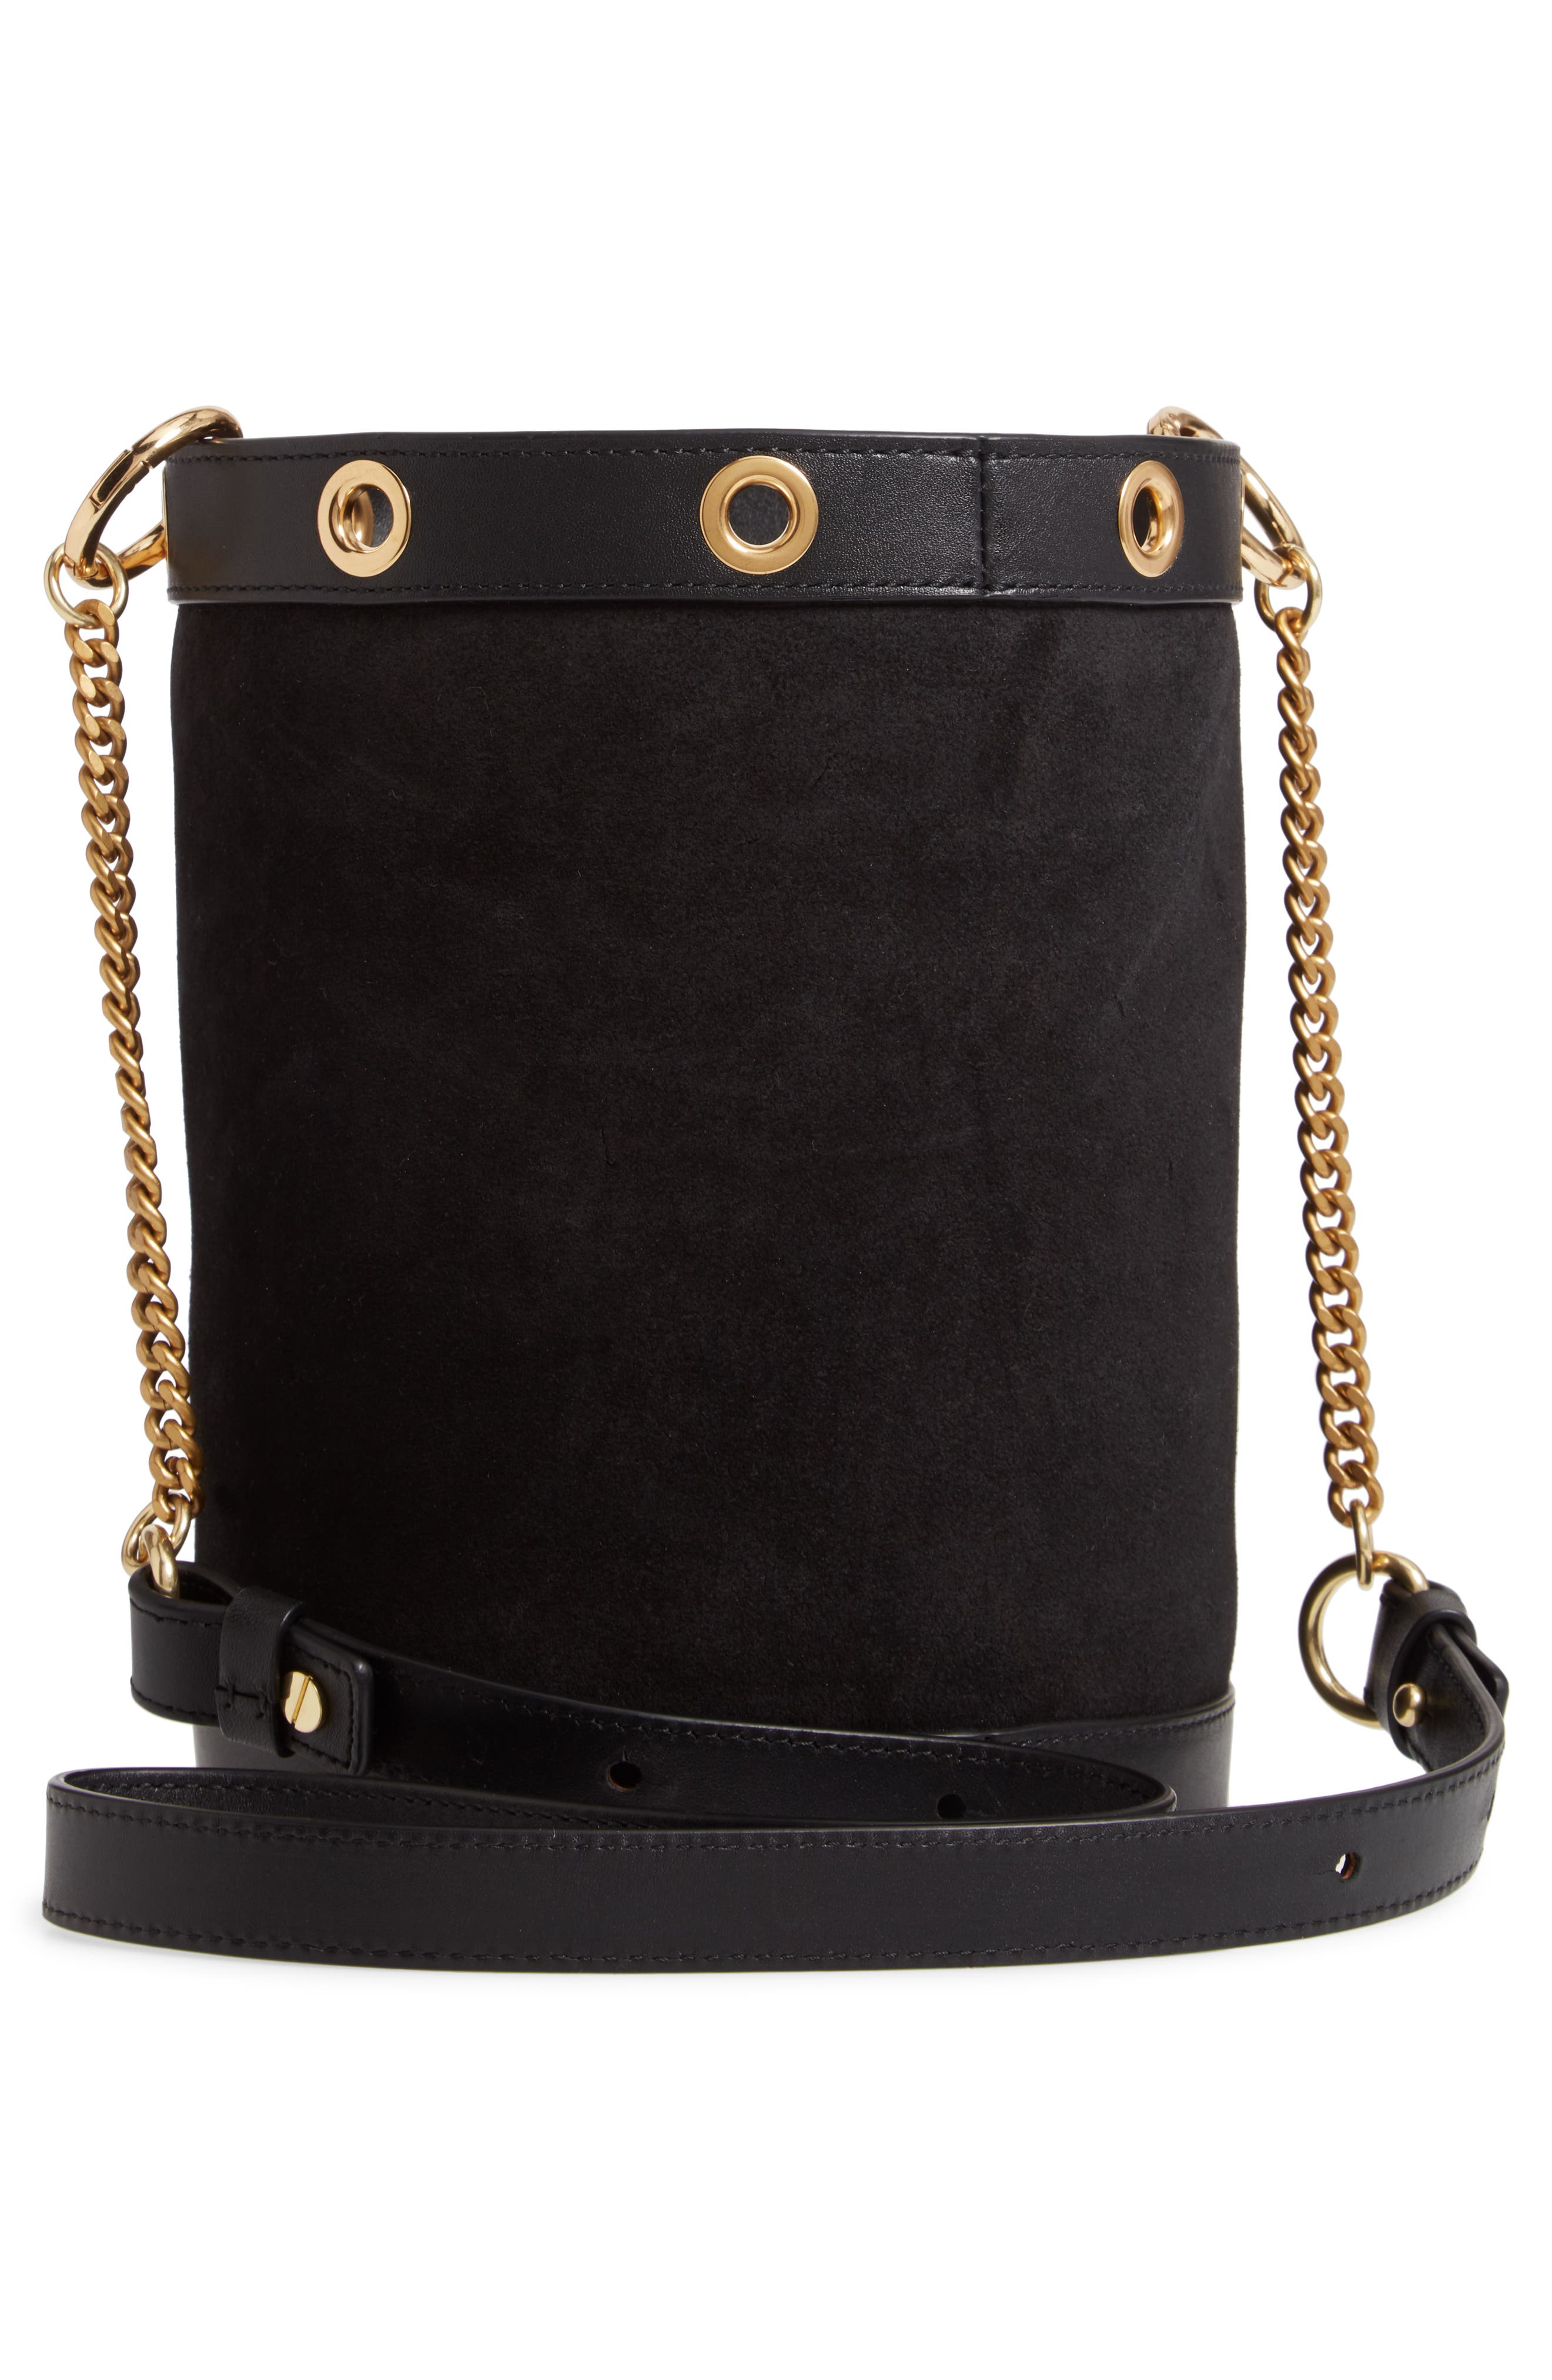 SEE BY CHLOÉ, Debbie Leather Bucket Bag, Alternate thumbnail 4, color, 001